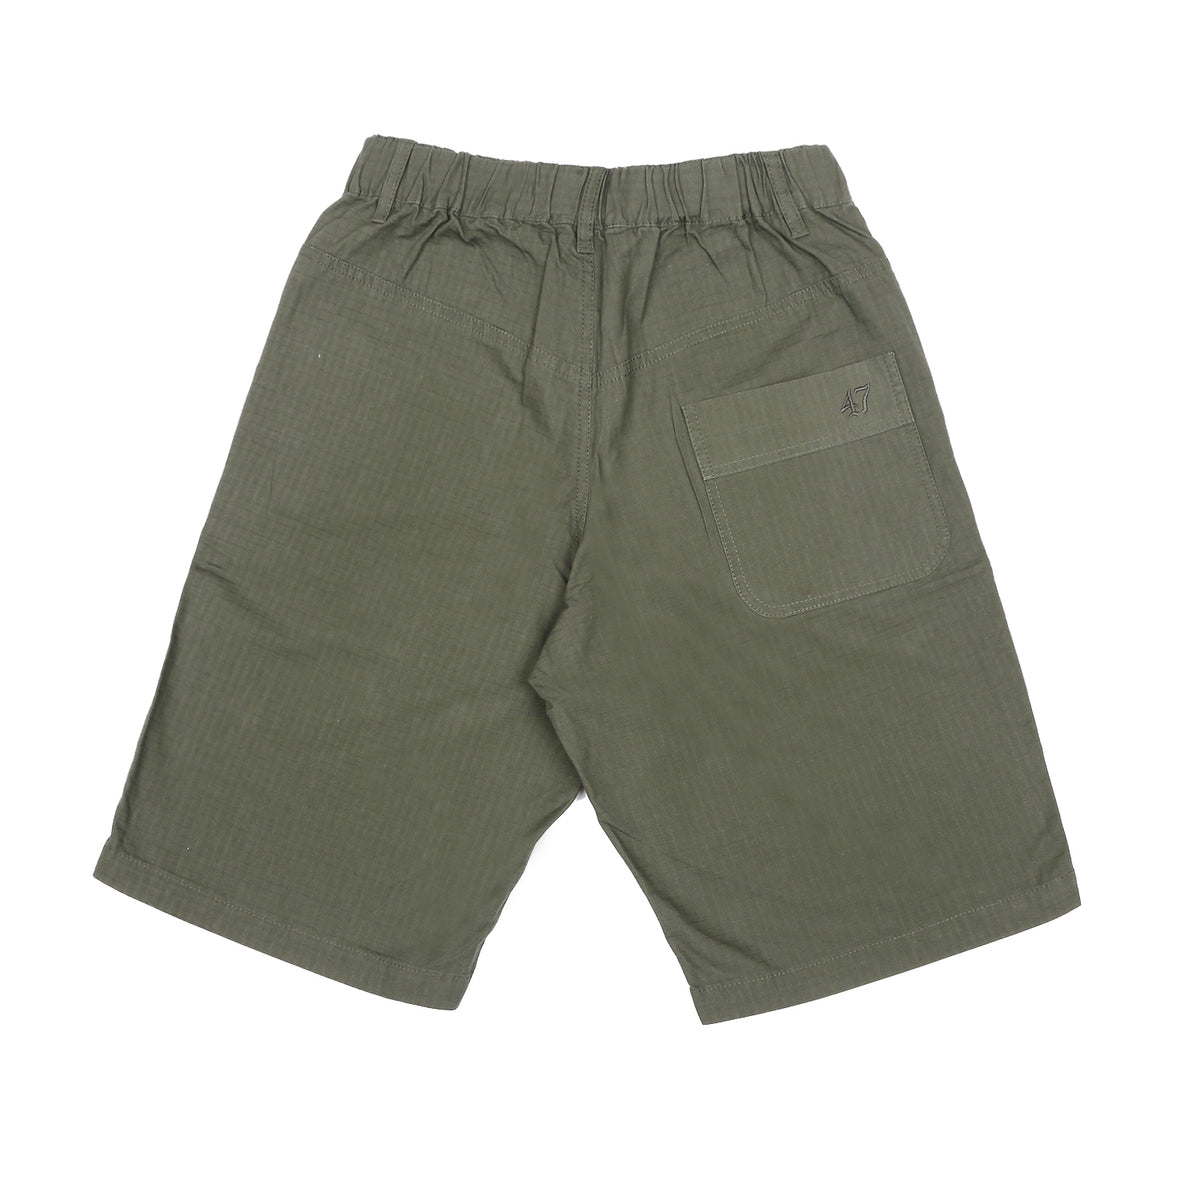 Edwin - Labour Short - Military Green